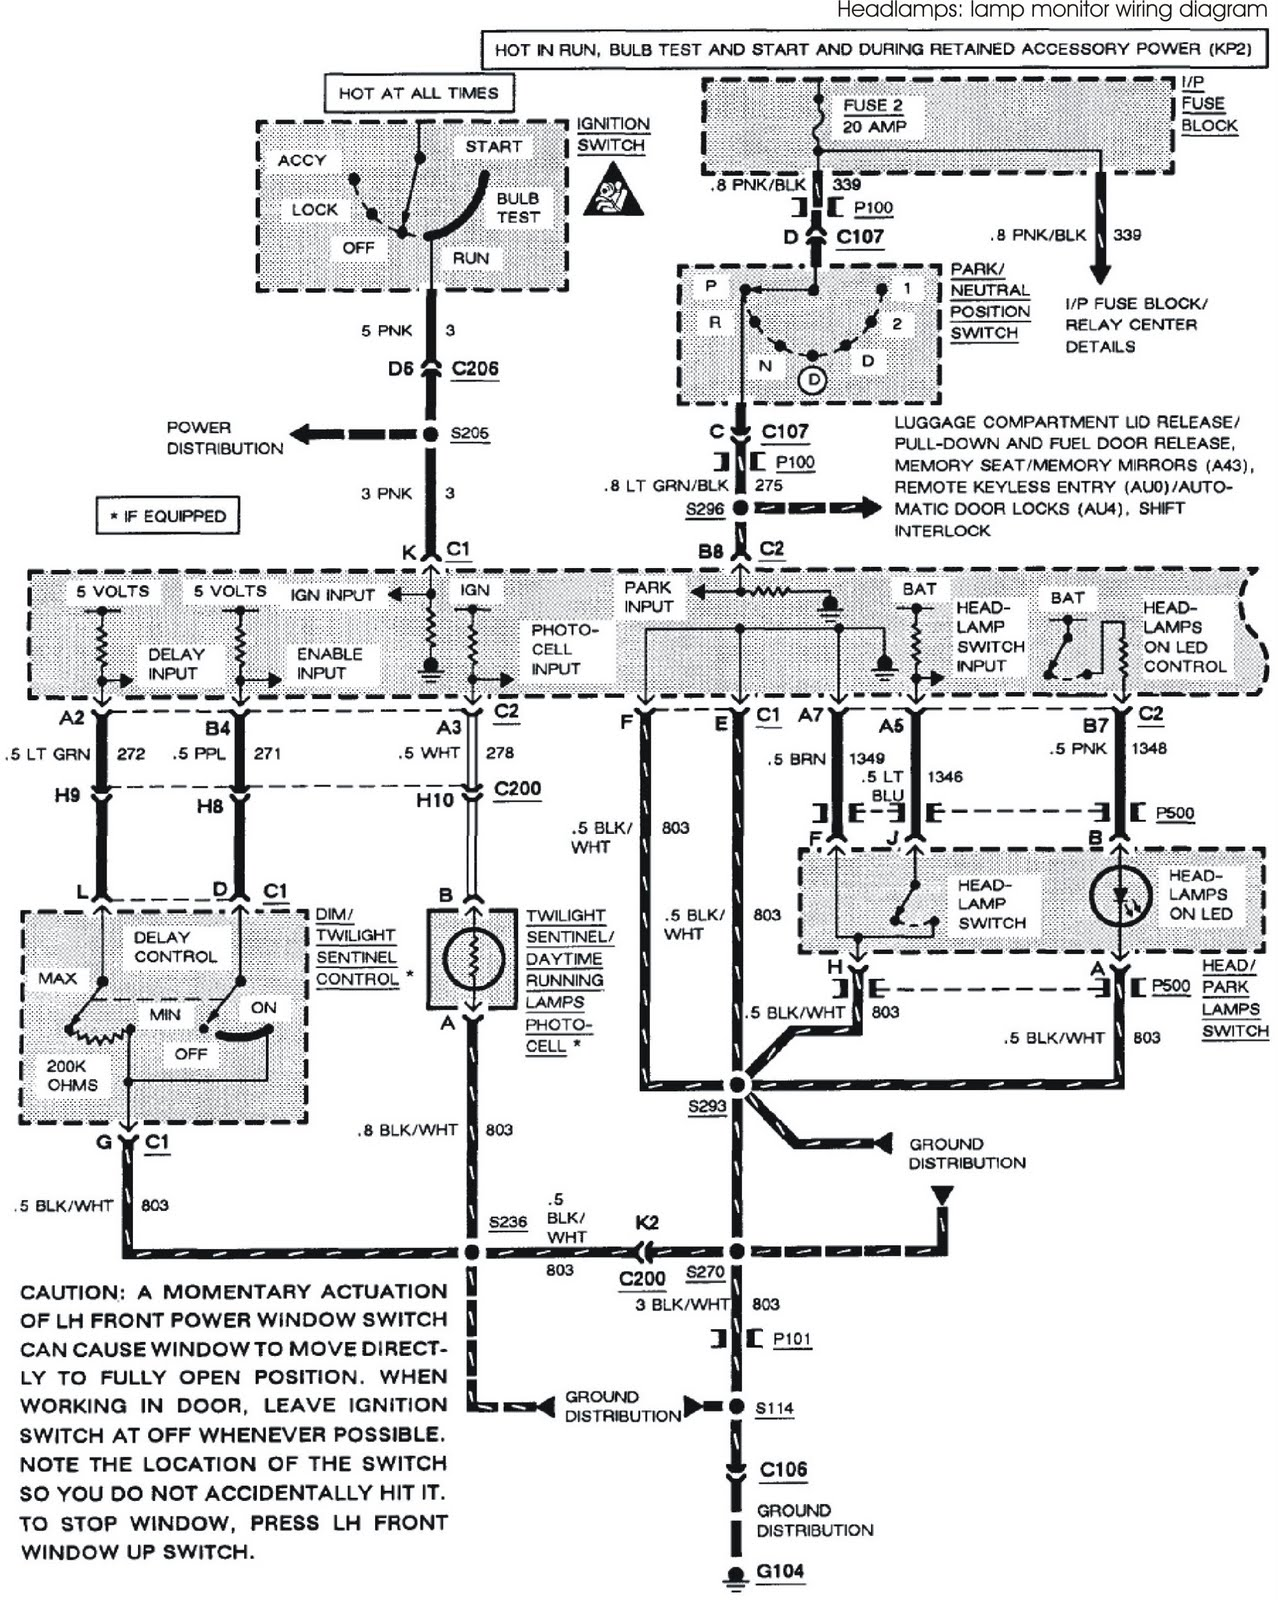 93 Chevy Astro Engine Diagram Get Free Image About Wiring 1993 Fuse Box For Van Car Pictures Wire Rh Sellfie Co